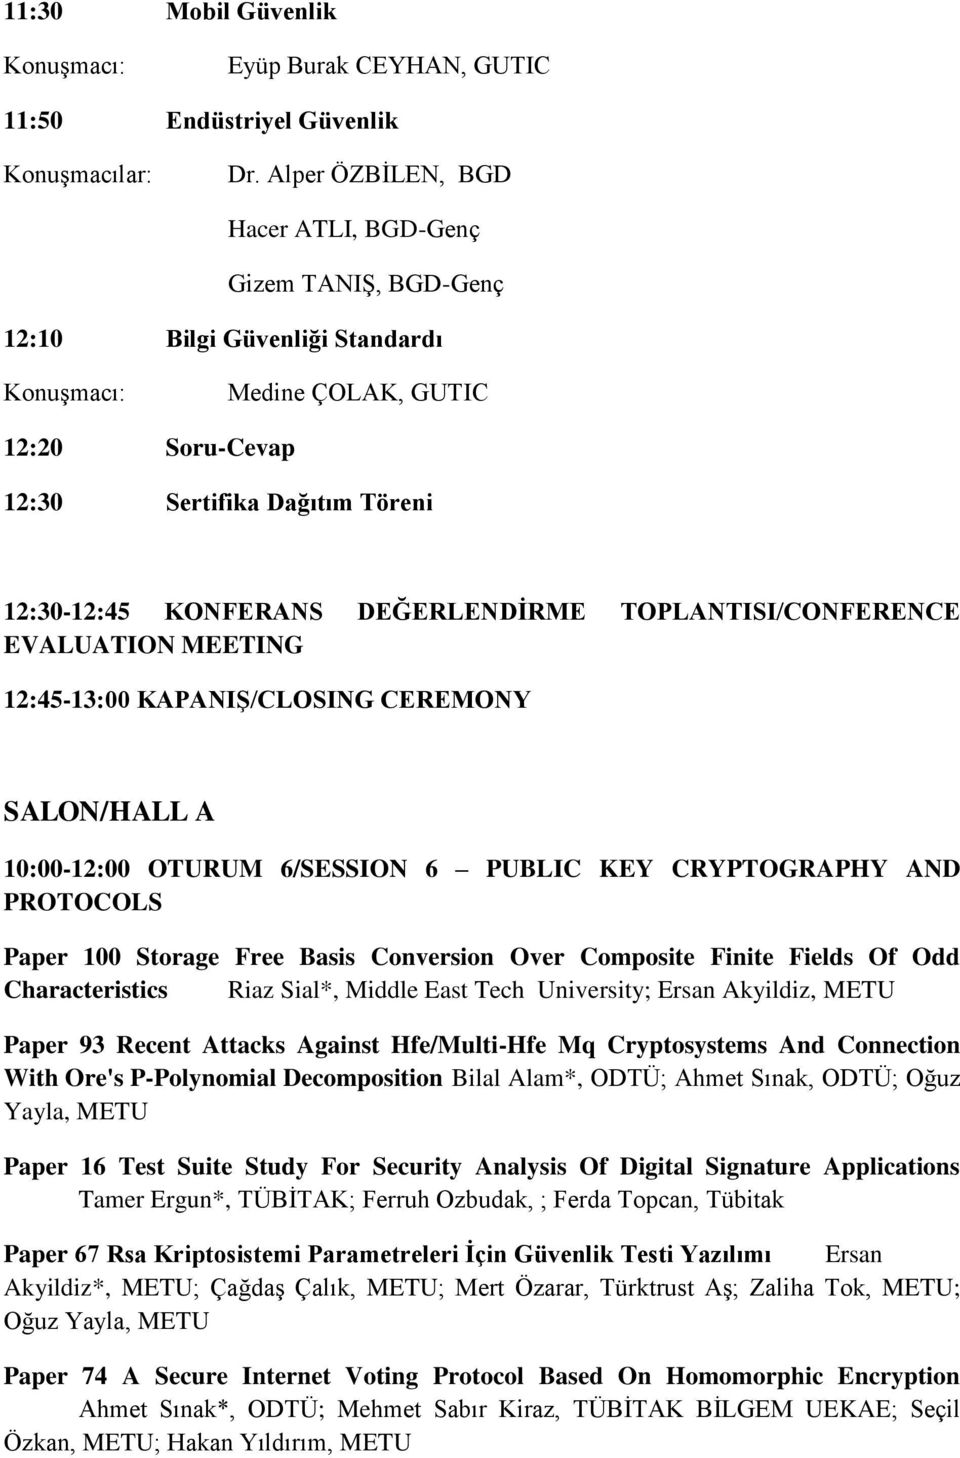 TOPLANTISI/CONFERENCE EVALUATION MEETING 12:45-13:00 KAPANIŞ/CLOSING CEREMONY SALON/HALL A 10:00-12:00 OTURUM 6/SESSION 6 PUBLIC KEY CRYPTOGRAPHY AND PROTOCOLS Paper 100 Storage Free Basis Conversion